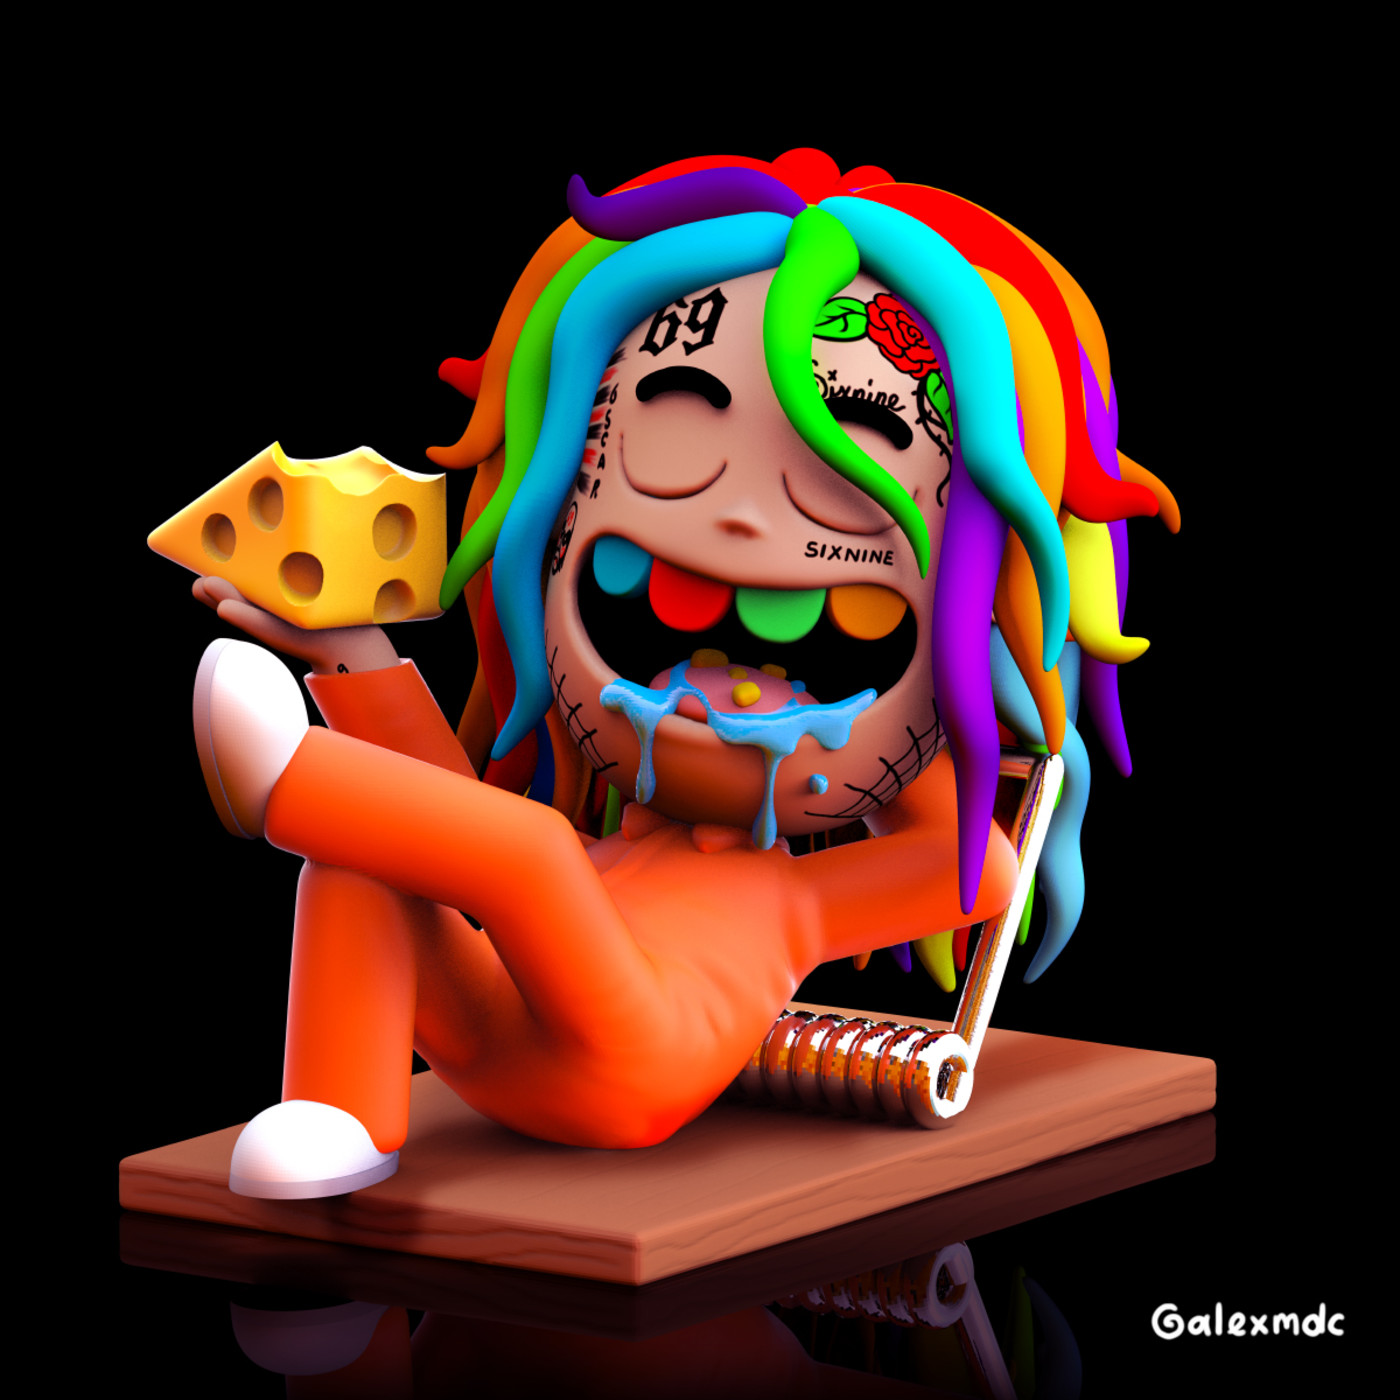 Tekashi 6ix9ine rat illustration by @alexmdc